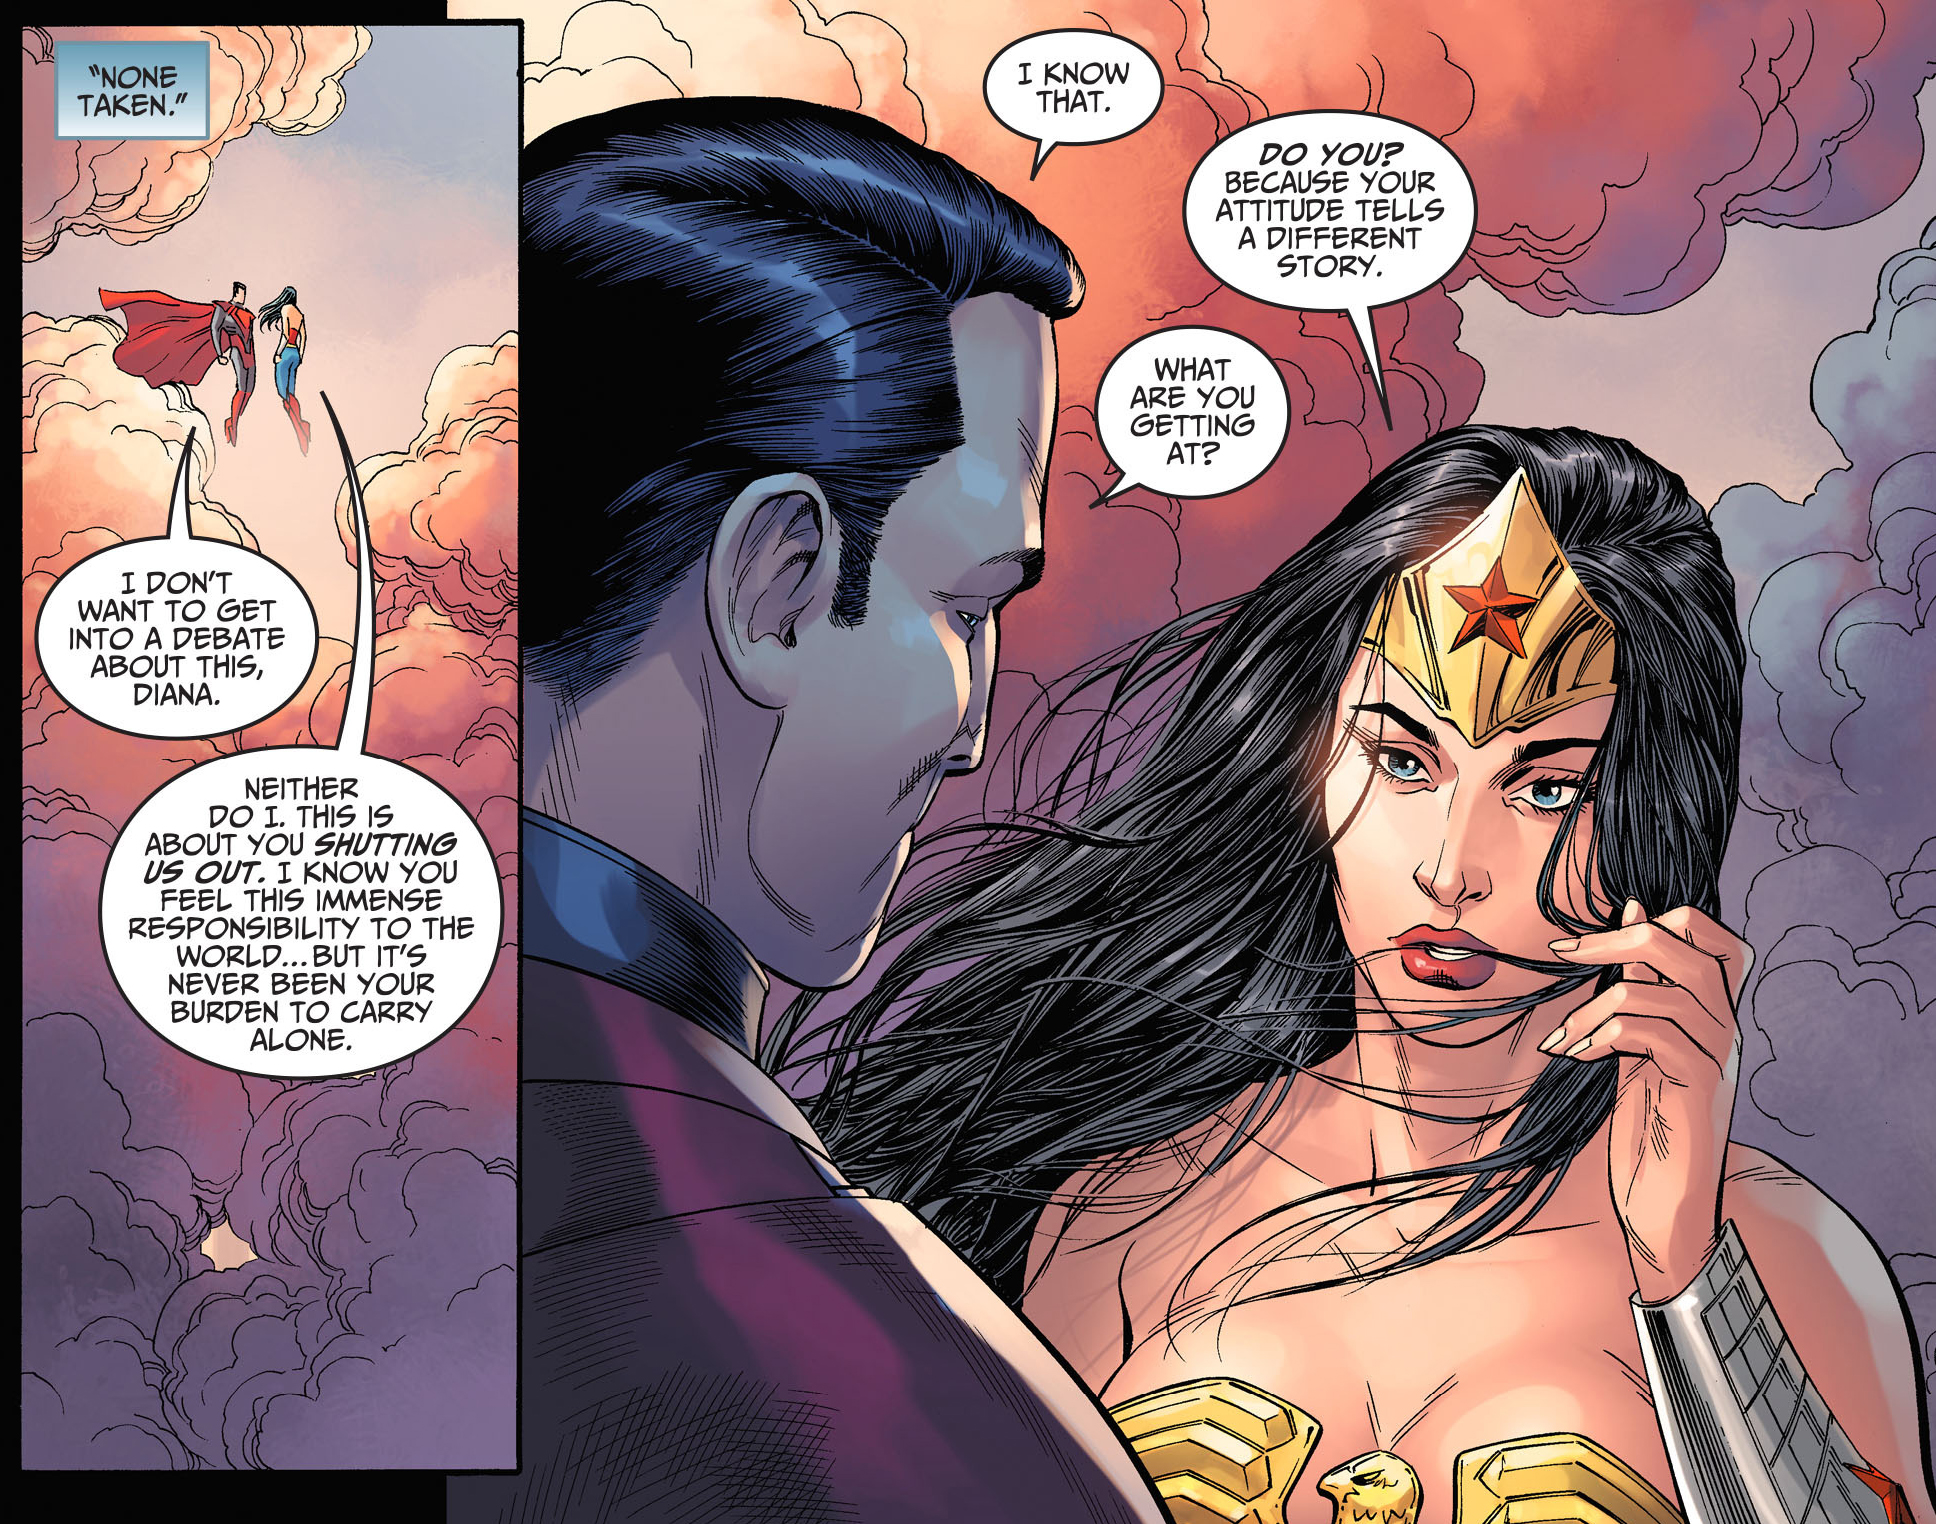 wonder woman does not work with criminals